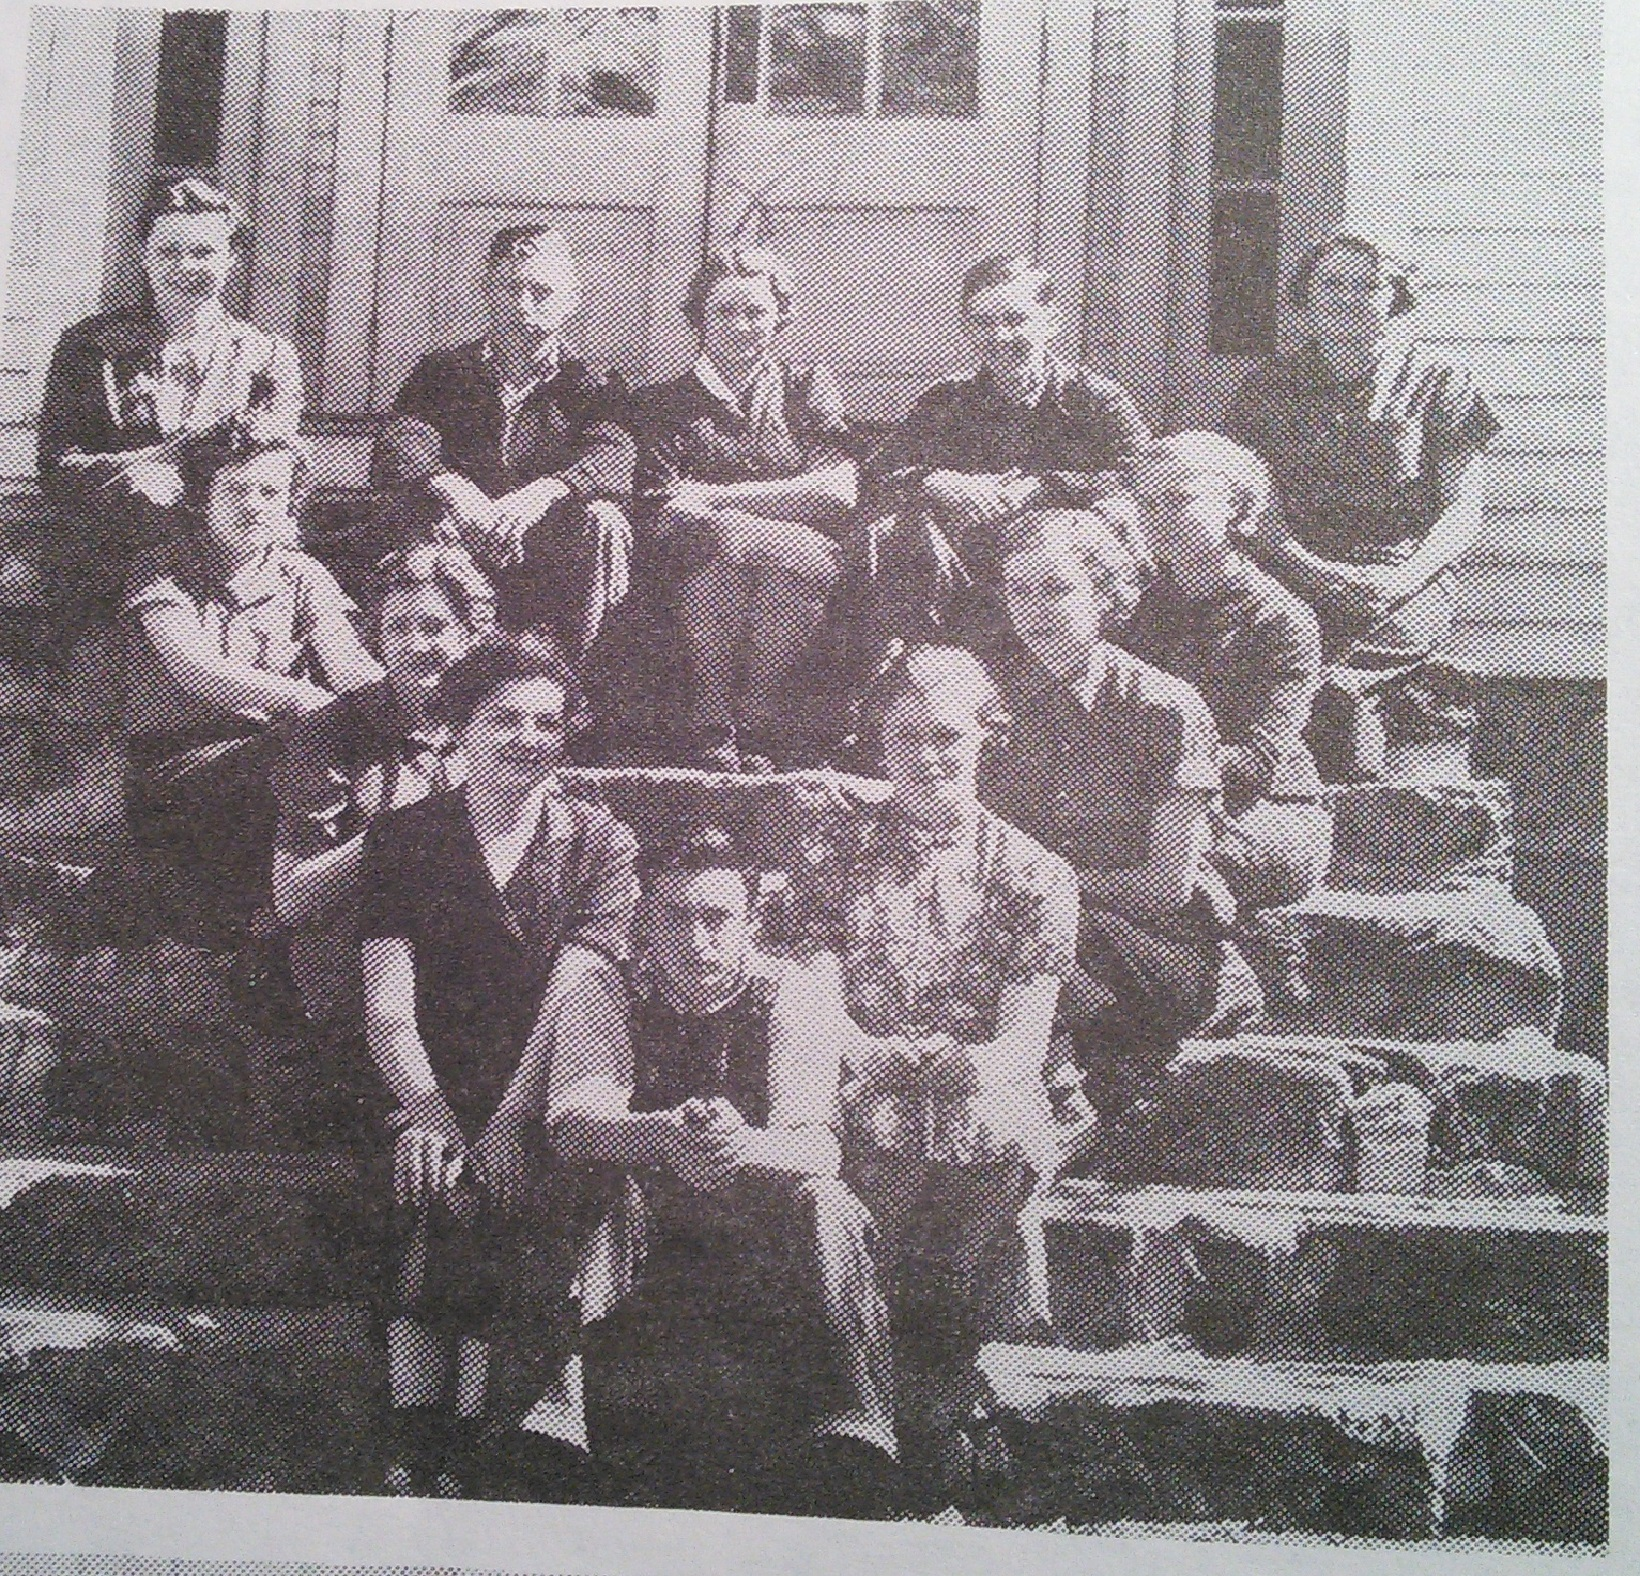 1938 Geometry Class Picture taken on the steps of the old high school building. Wasn't it a neat idea that they sat in a triangle since they were studying geometry?